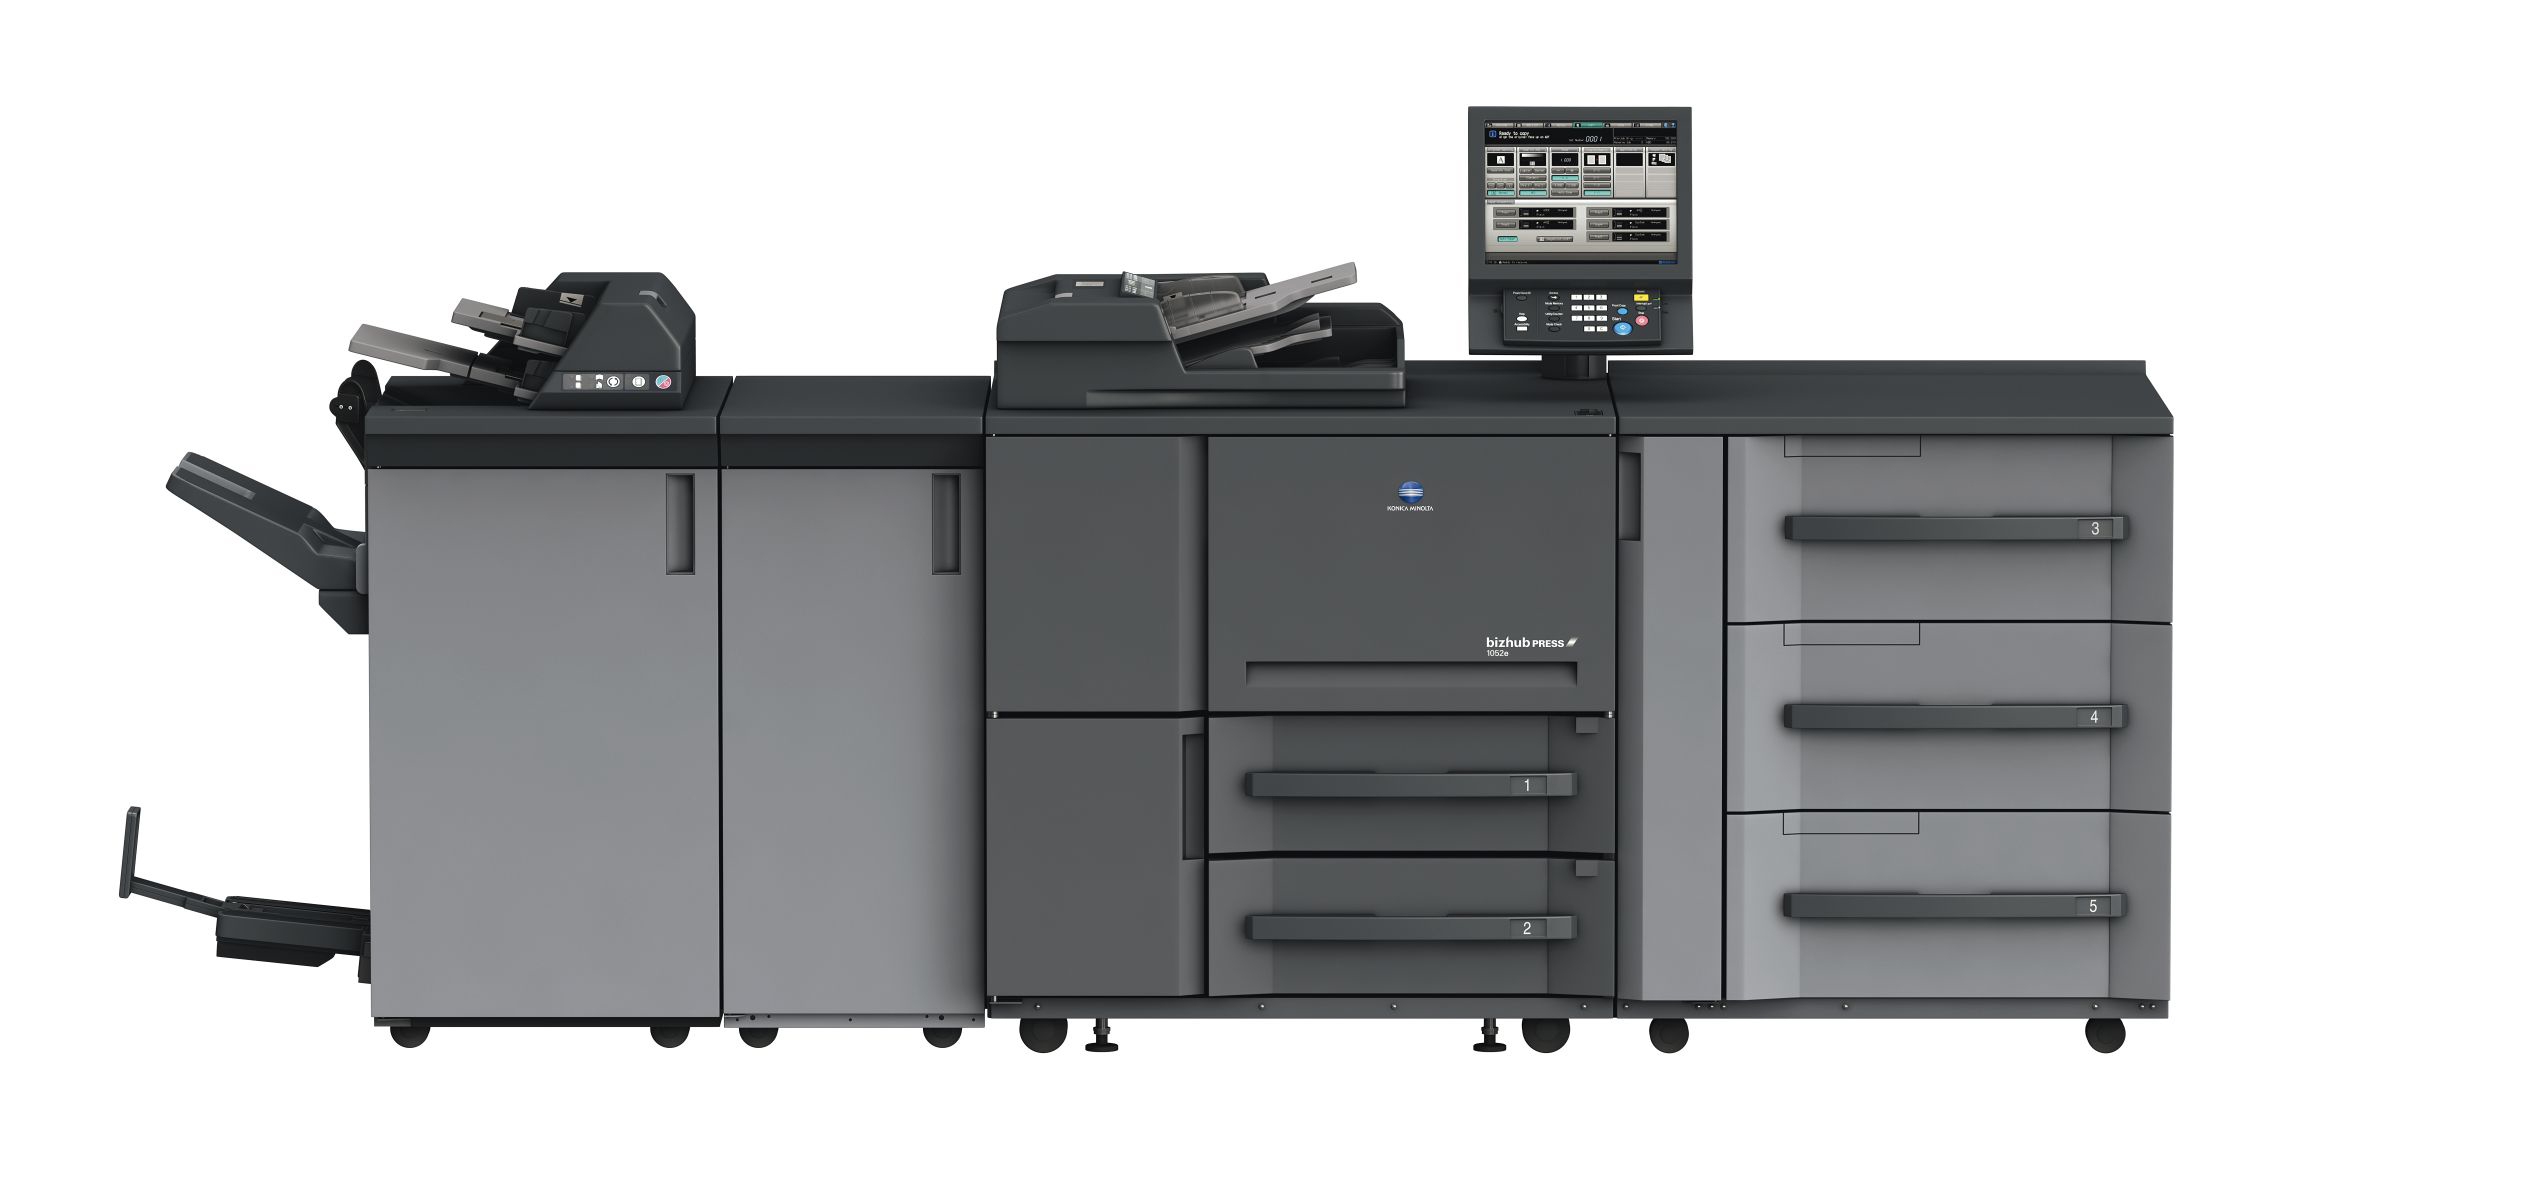 Konica Minolta bizhub PRESS 1052